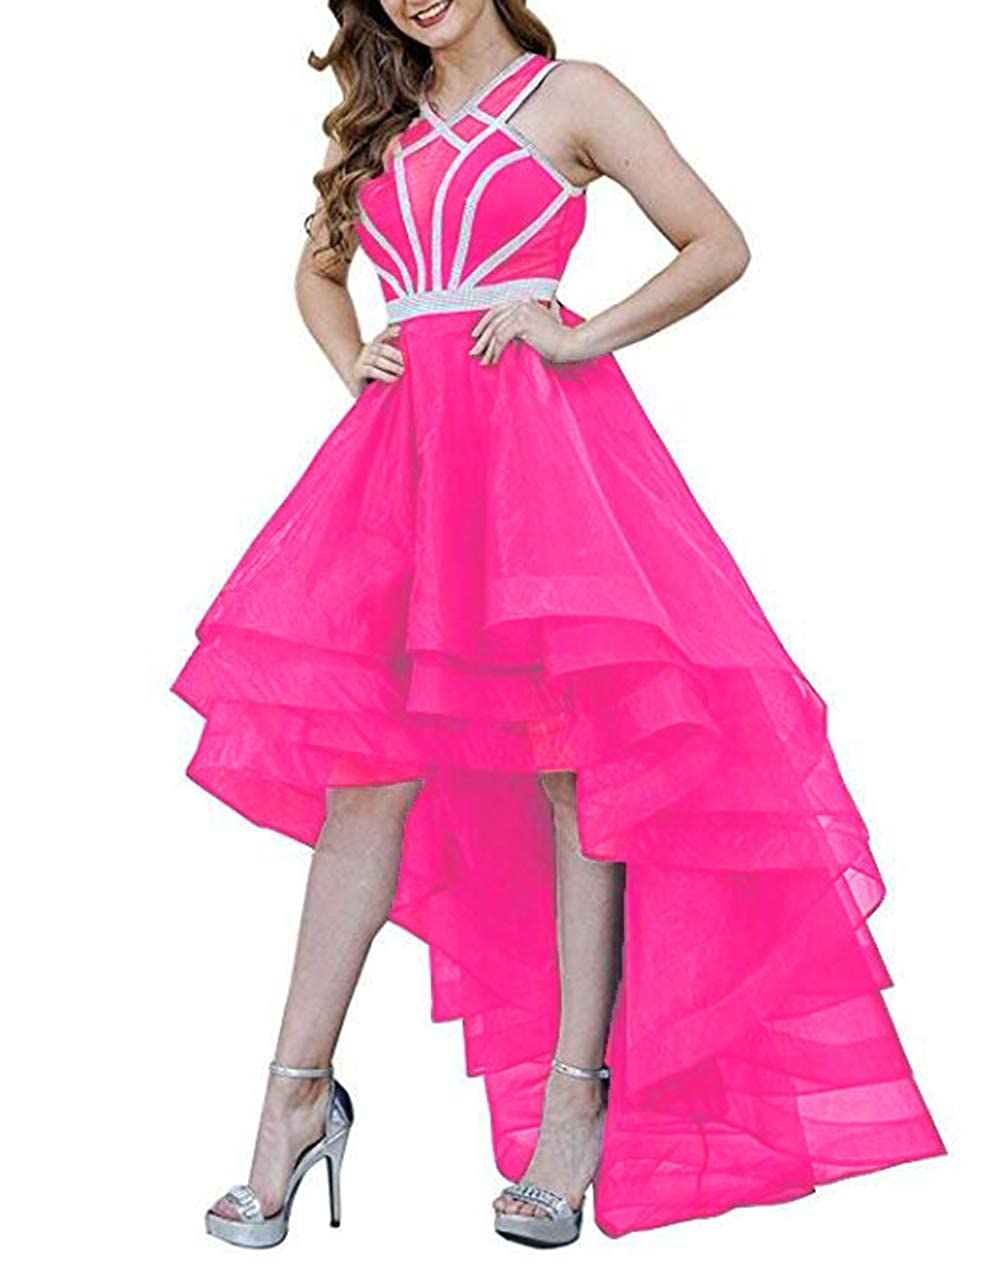 Hot Pink alilith.Z Beaded Homecoming Dresses 2018 High Low Sexy Halter Long Formal Prom Dresses Party Gowns for Women